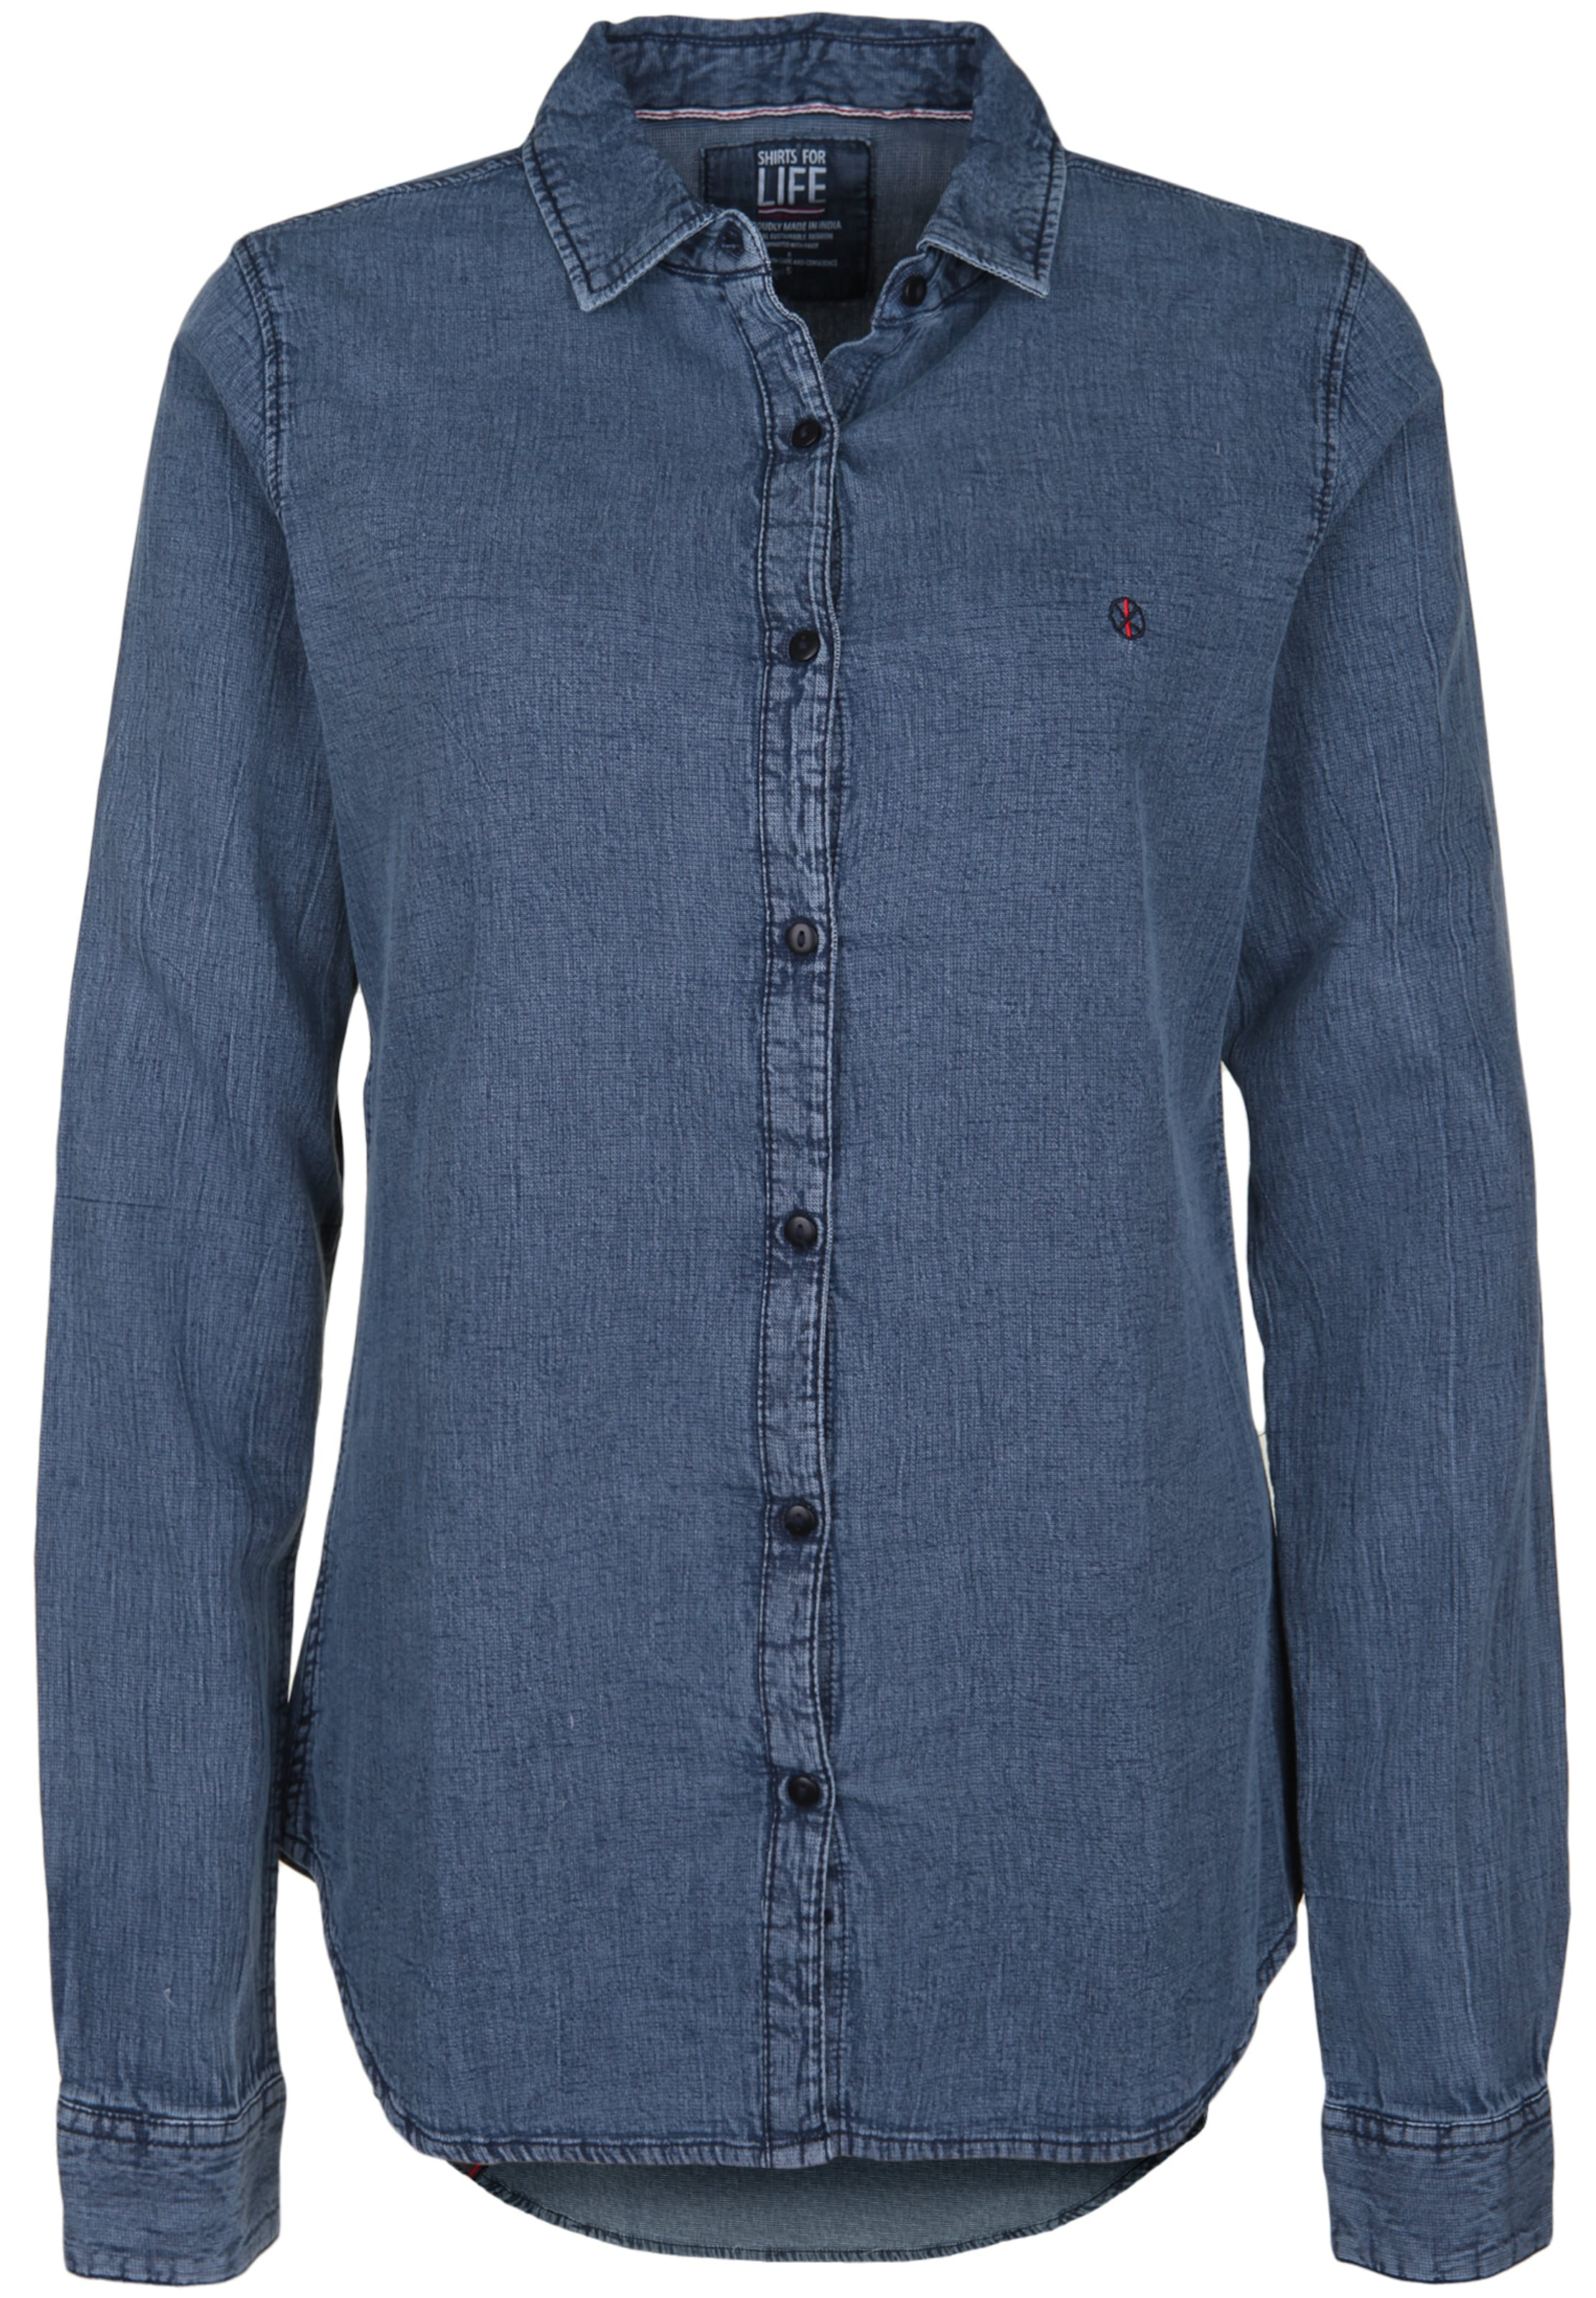 Shirts 'jane' Blue Denim Life Jeansbluse For In trdsQhC